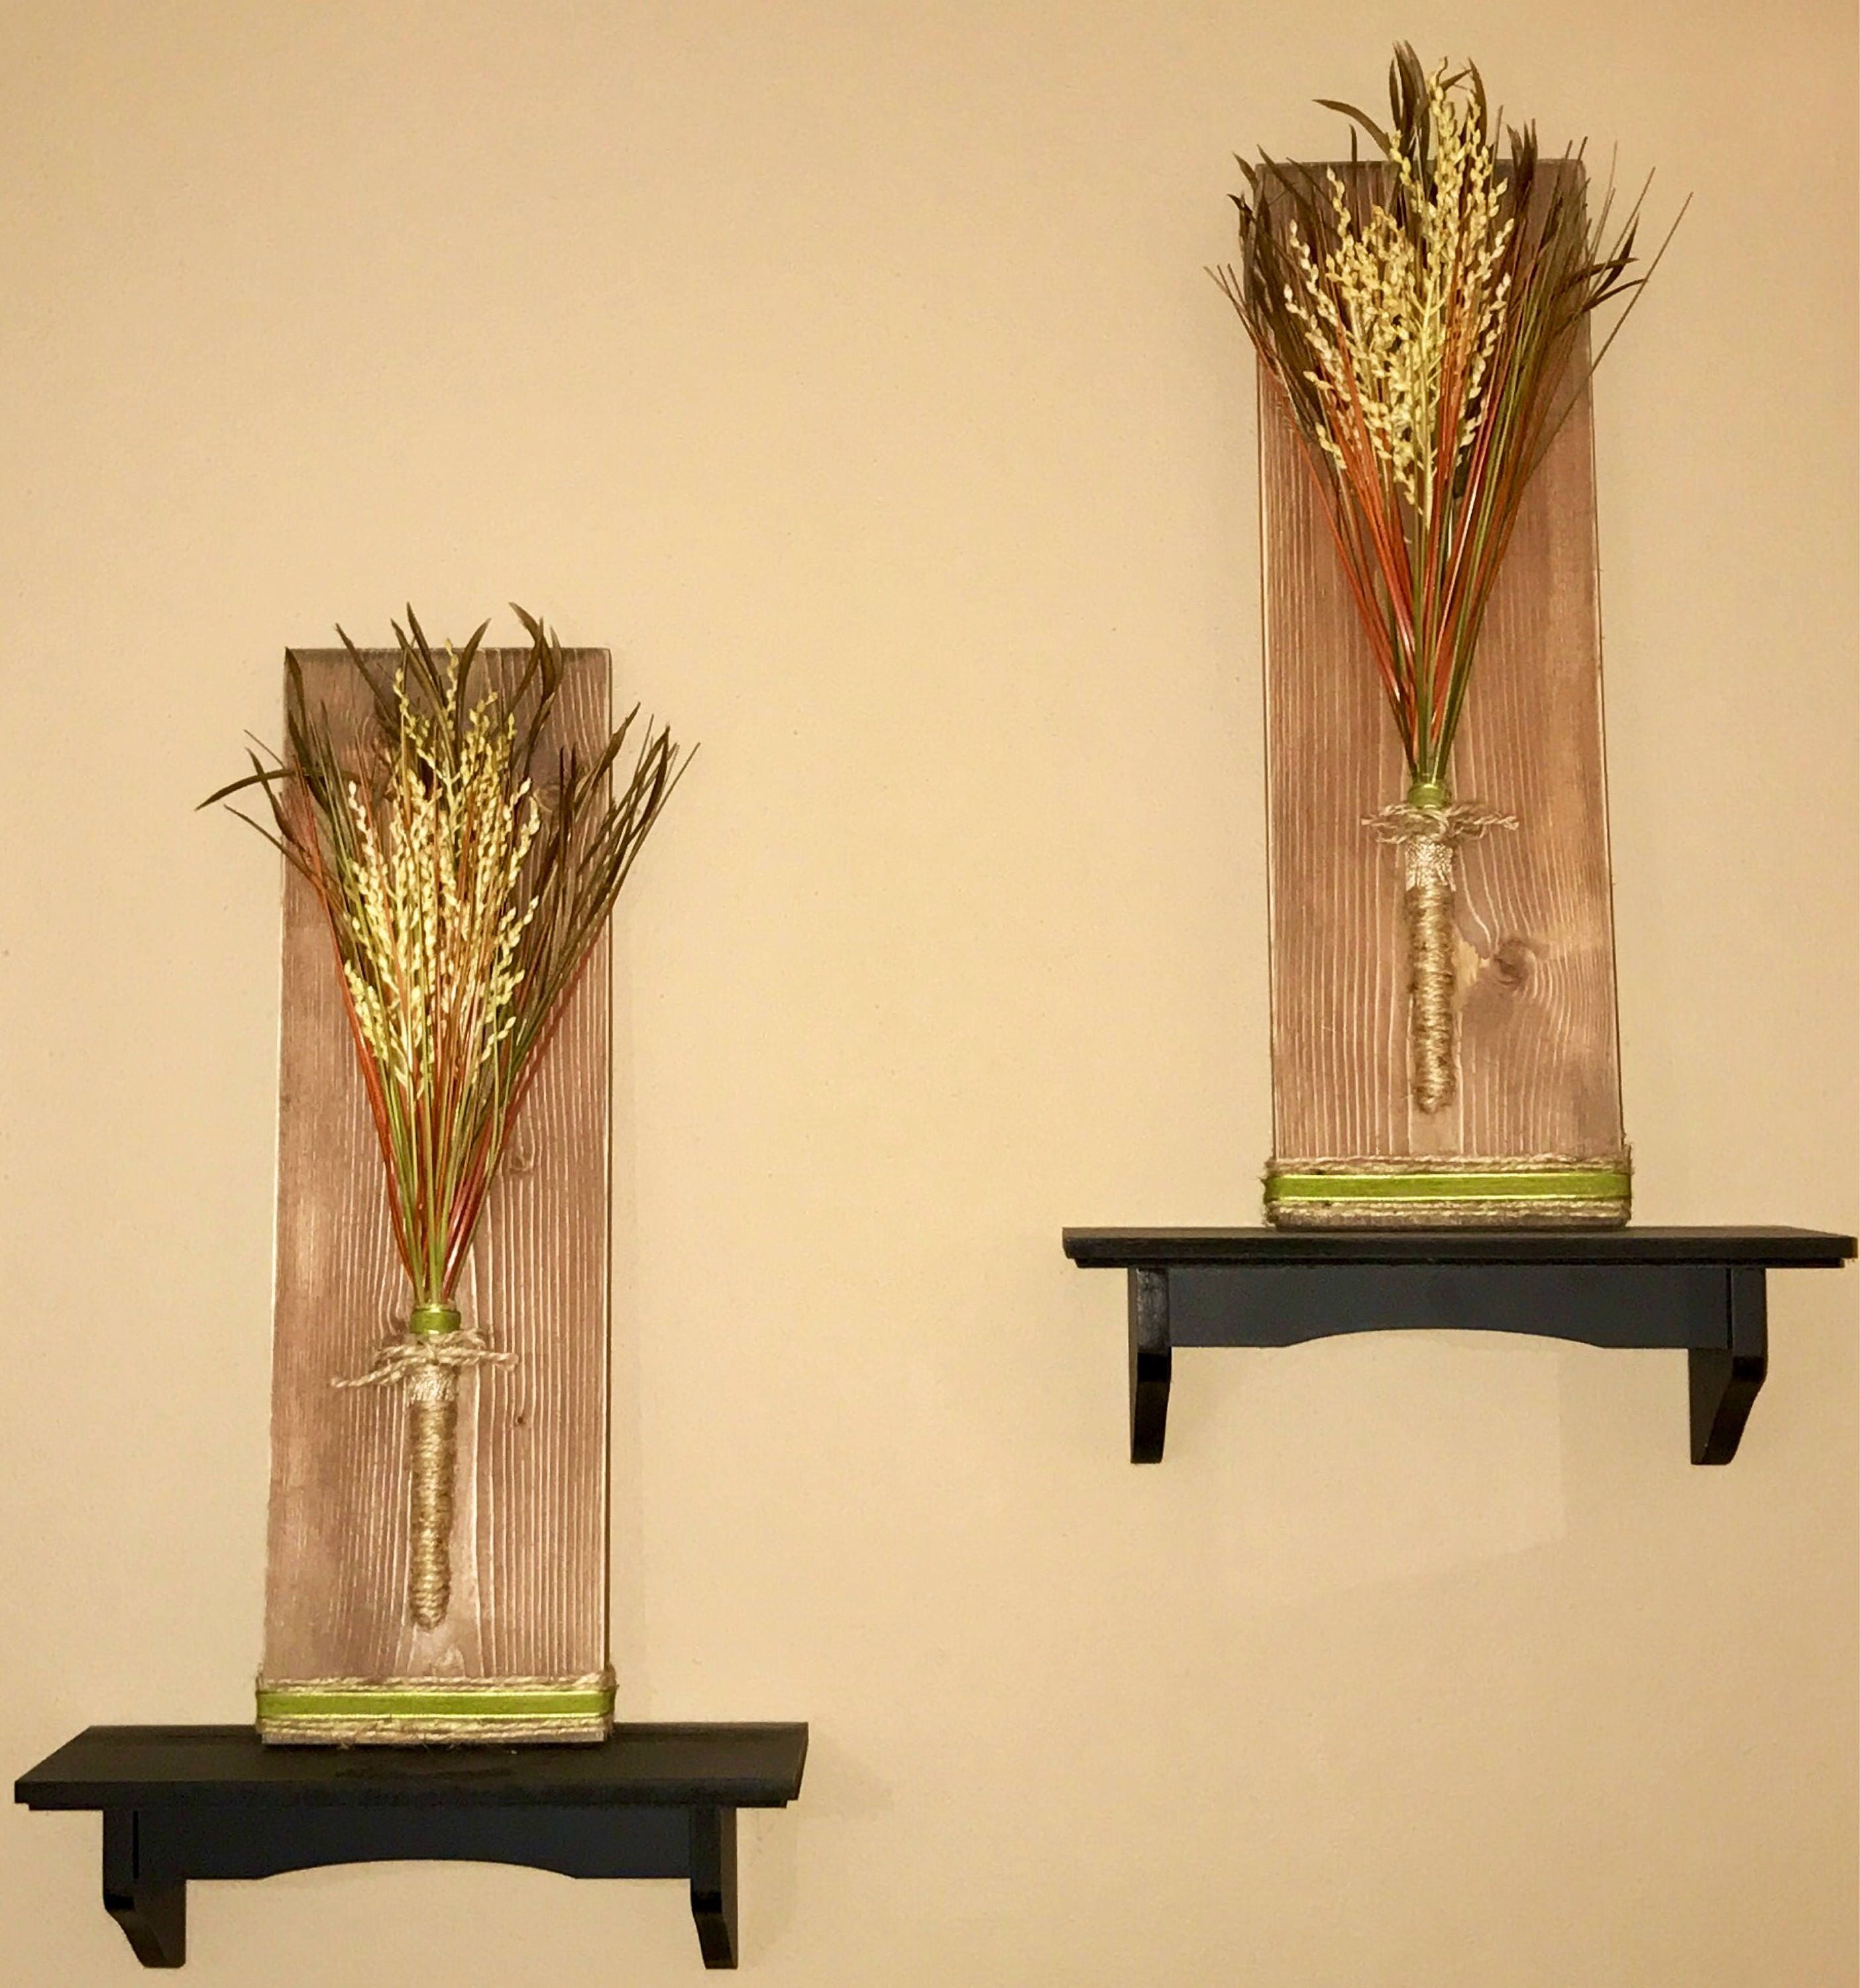 Cool Metal Sculpture Wall Art Pictures Inspiration - The Wall Art ...